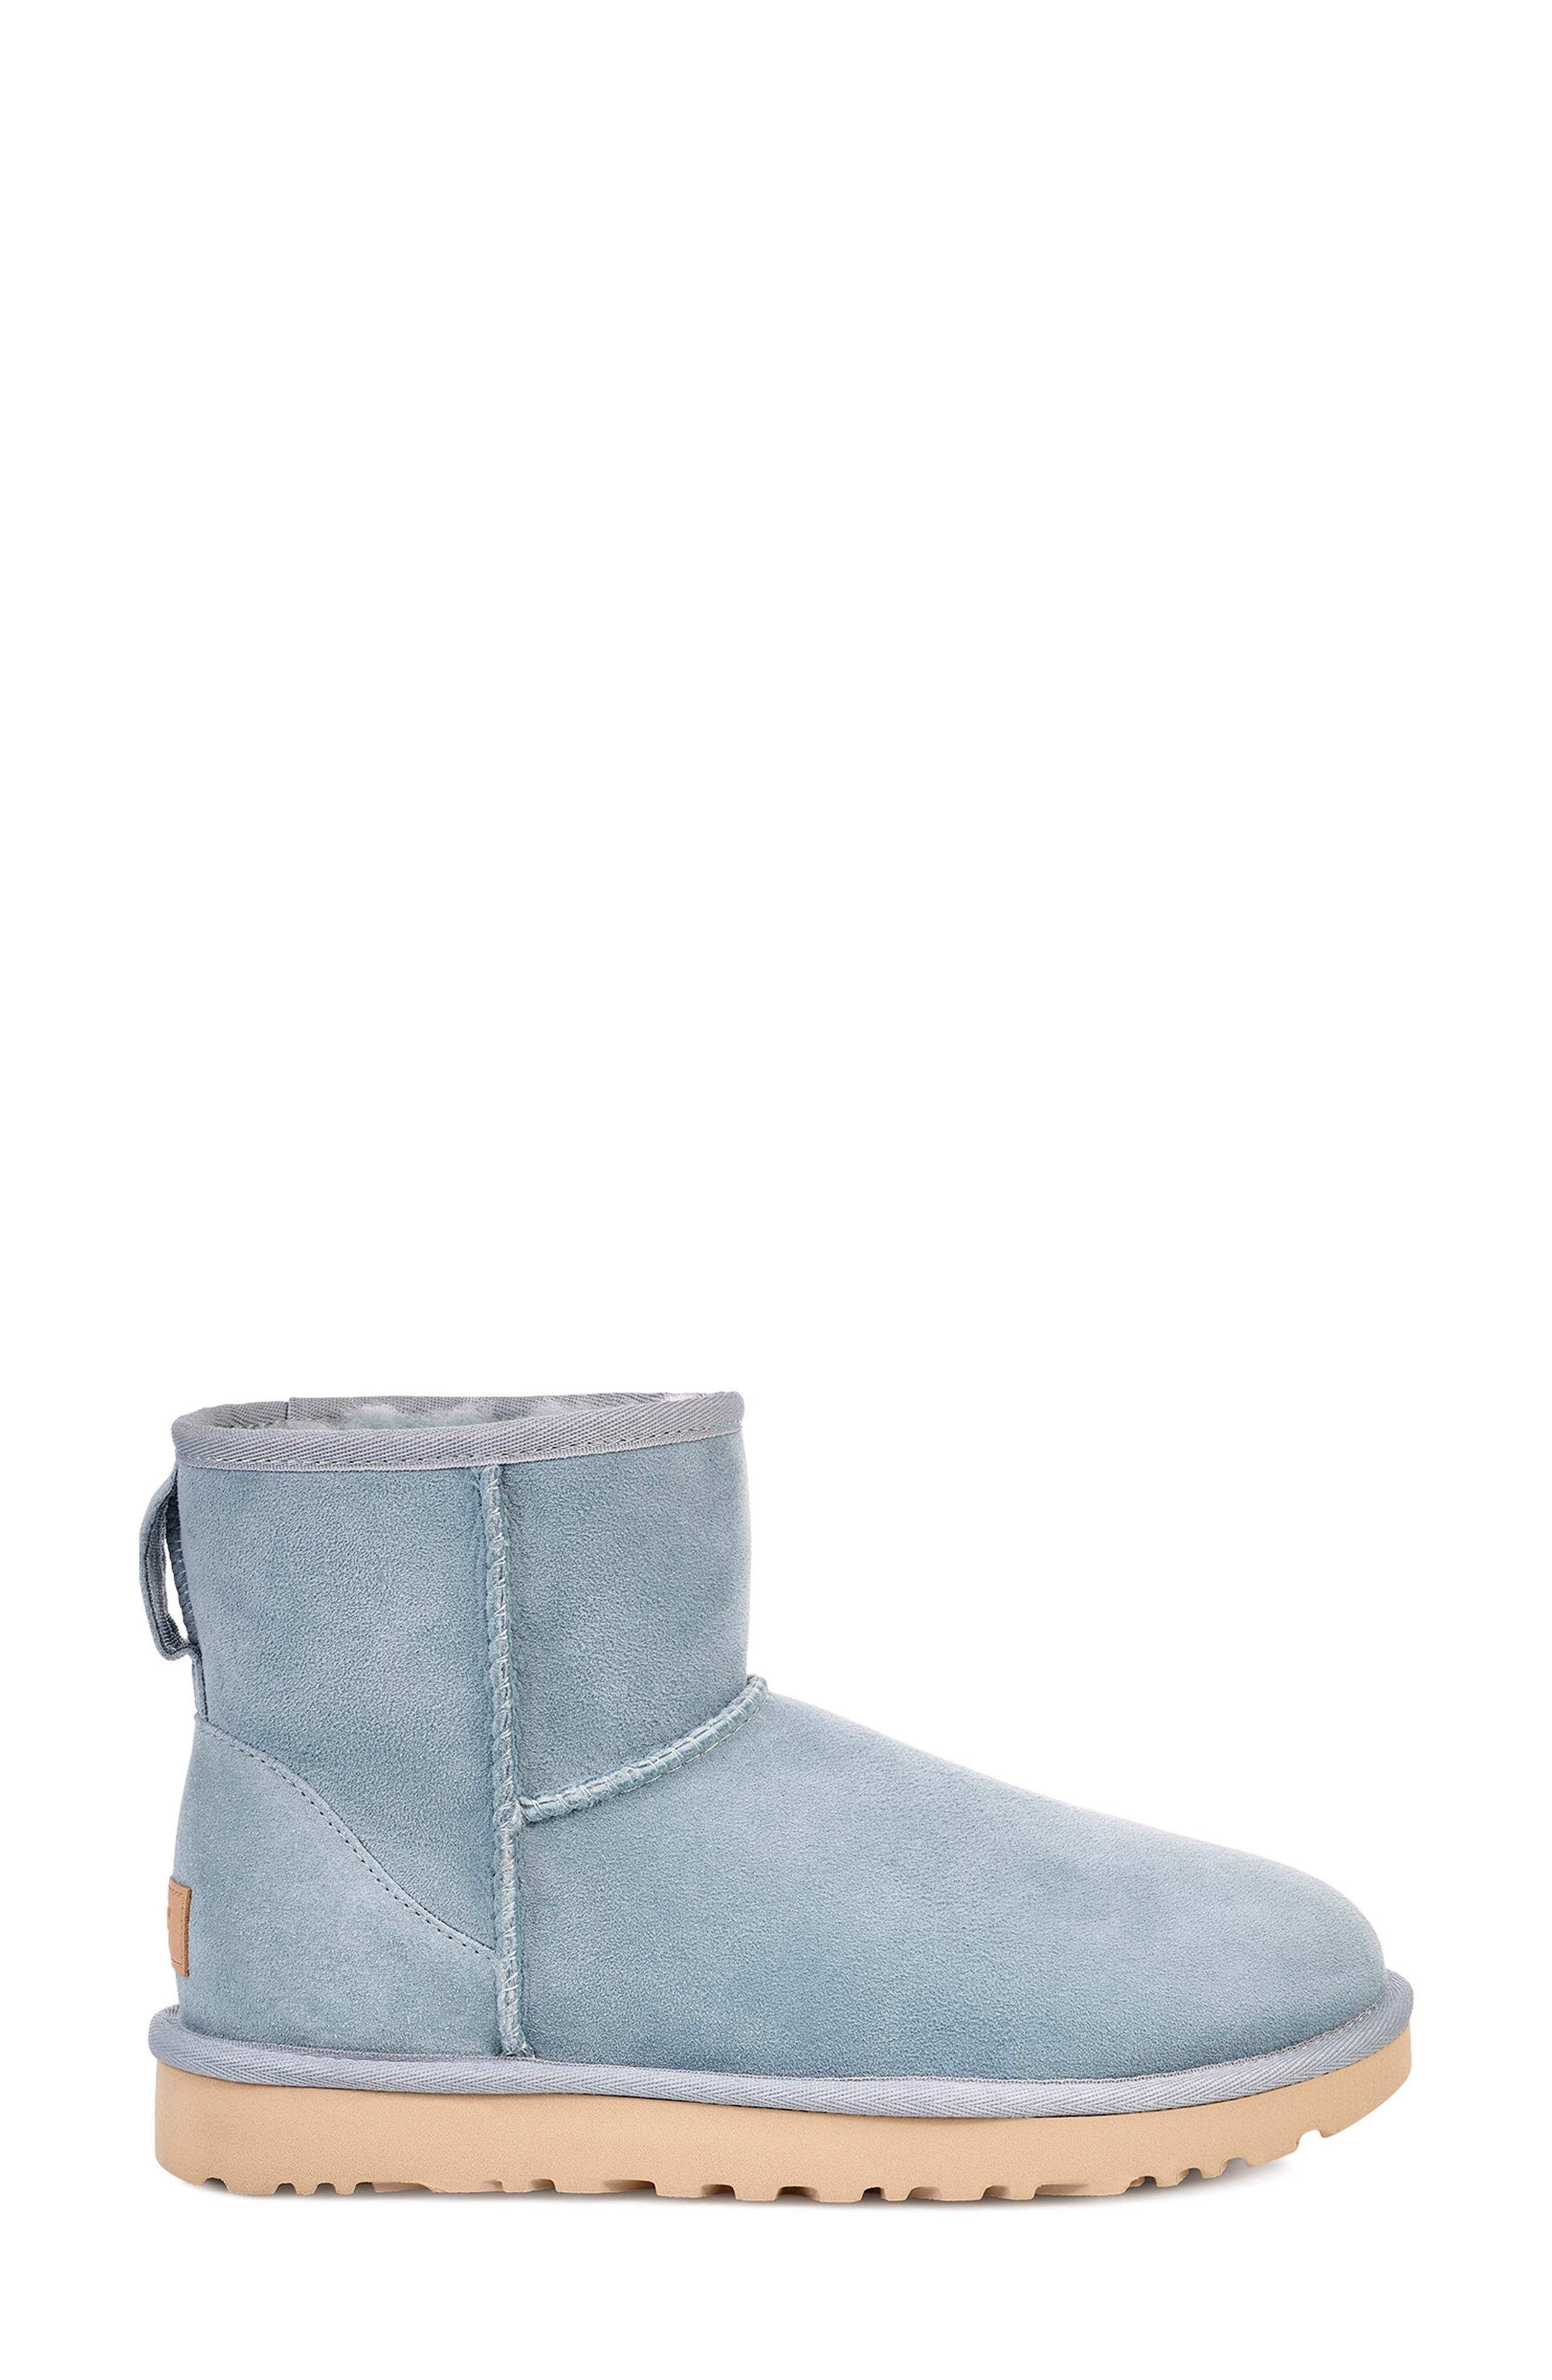 'Classic Mini II' Genuine Shearling Lined Boot,                             Alternate thumbnail 3, color,                             SUCCULENT SUEDE